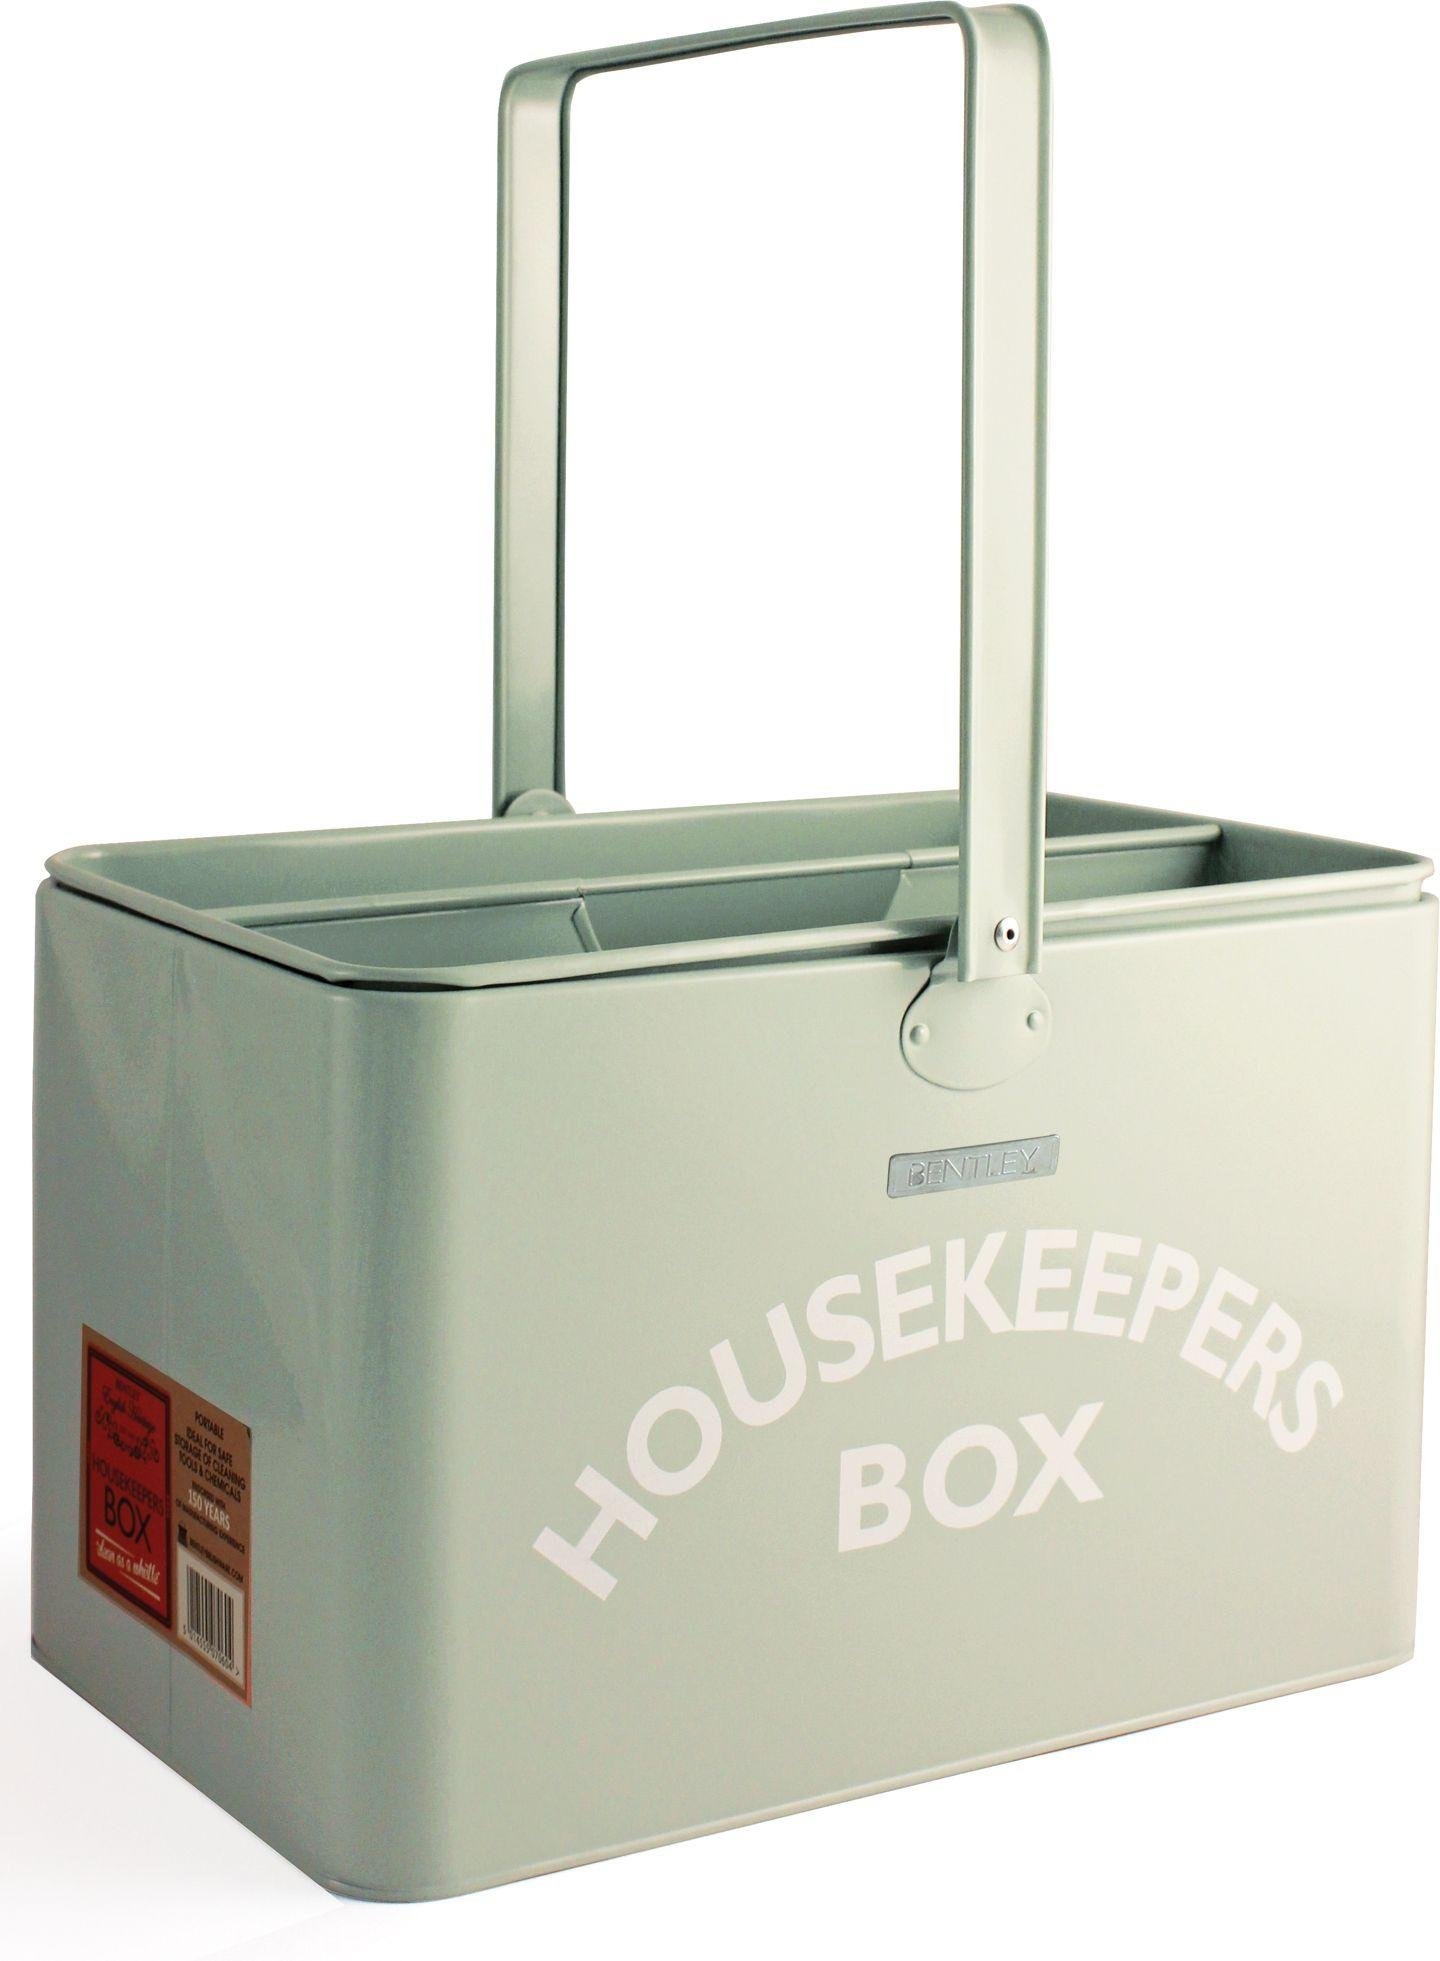 Heritage Traditional Housekeeper's Cleaning Caddy